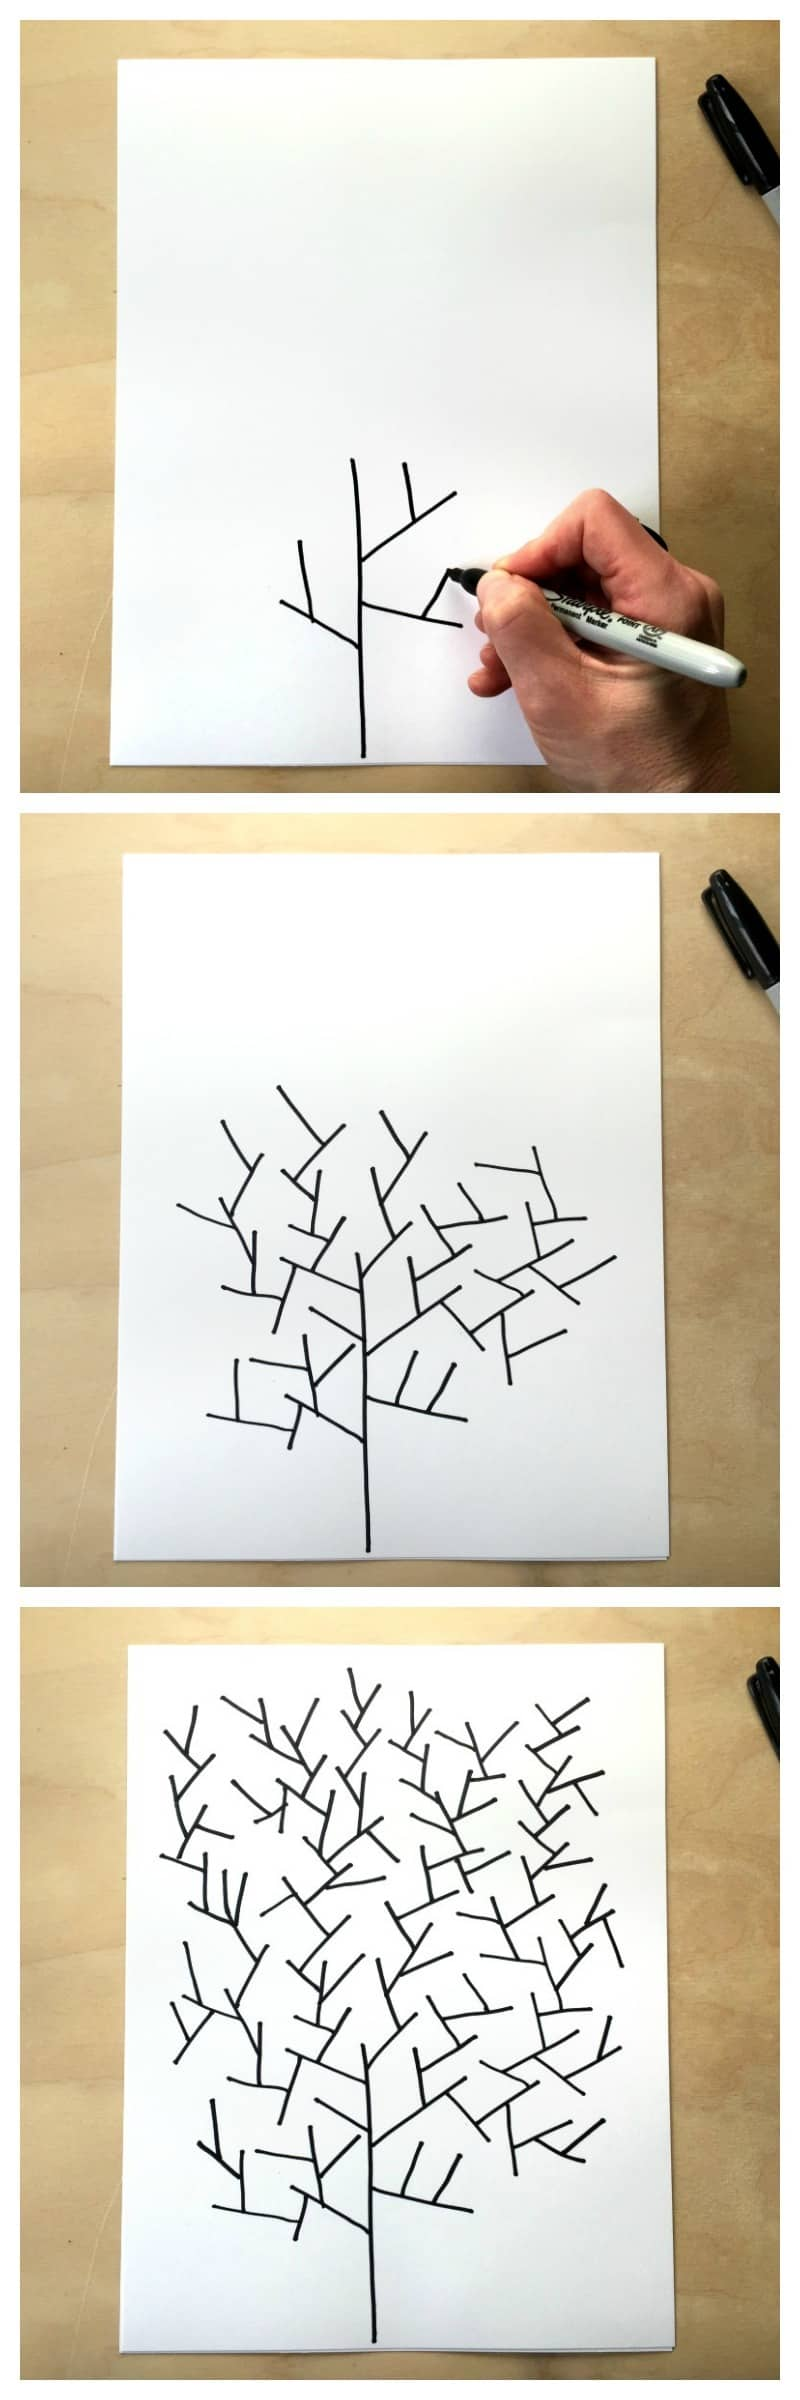 First steps in tree drawing game from Tangle Art and Drawing Games for Kids book.